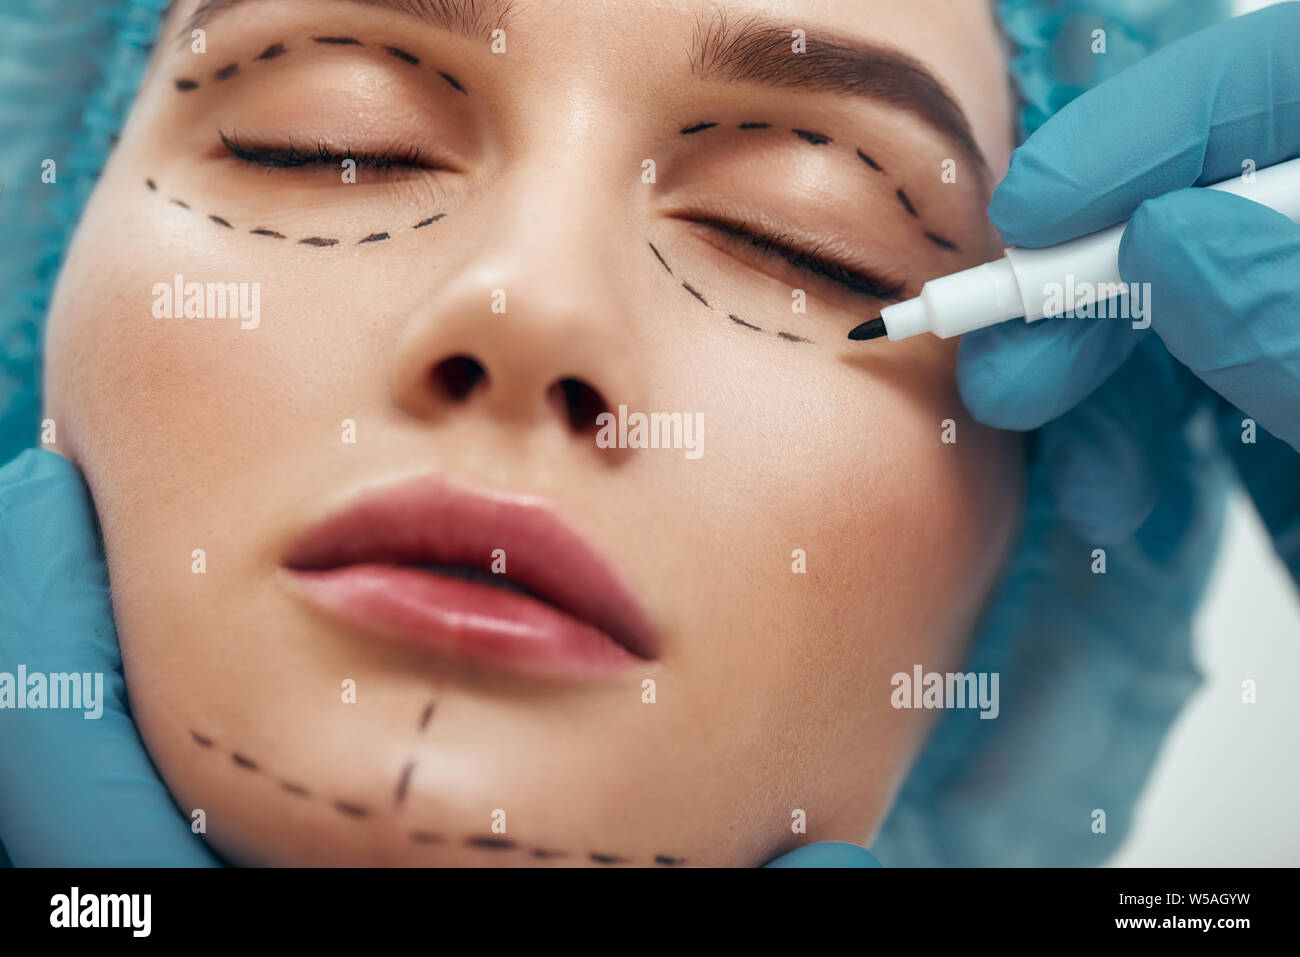 Becoming perfect. Close up photo of young woman with glowing skin in blue medical hat waiting for facial surgery while plastic surgeon in blue gloves drawing dashed line under eyes. Beauty concept. Facelift. Plastic surgery Stock Photo